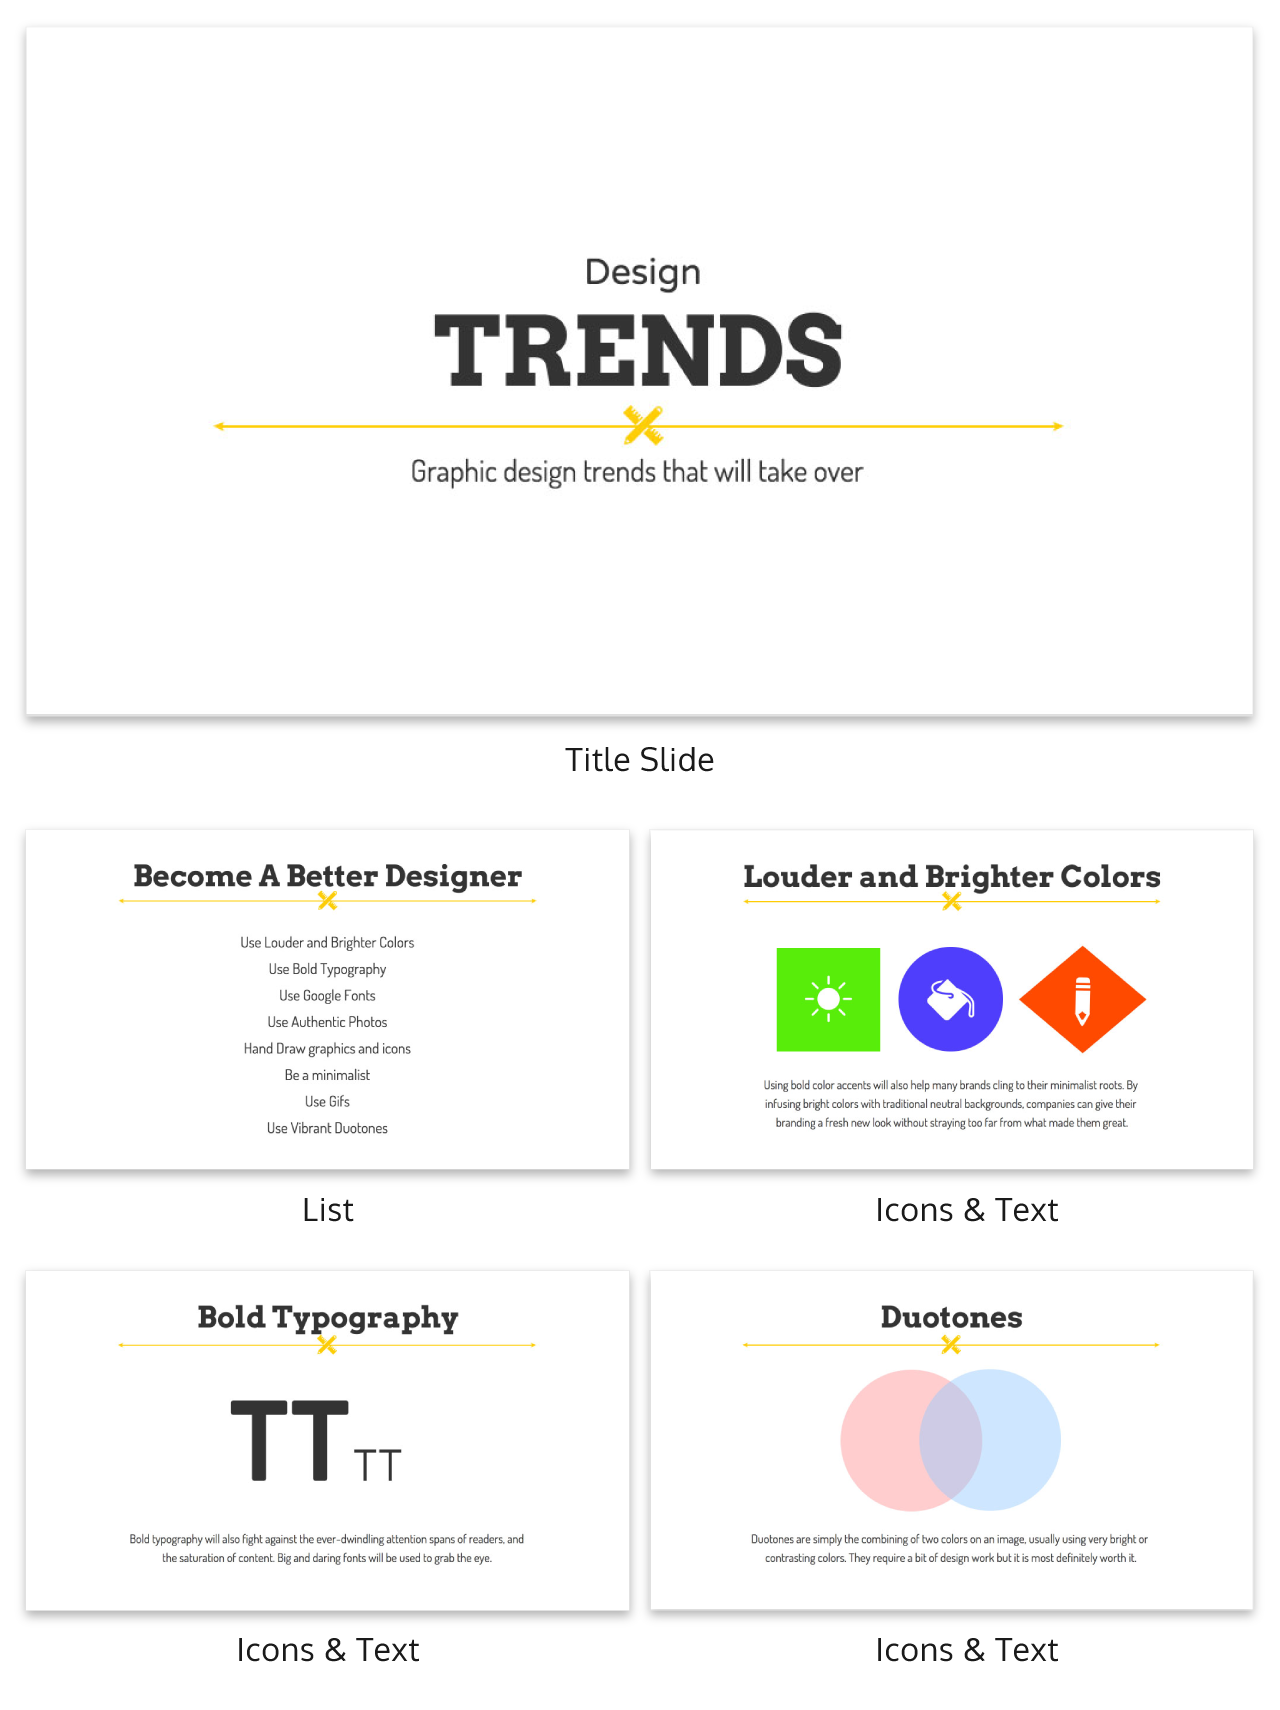 7 presentation templates better than an average powerpoint theme, Presentation templates